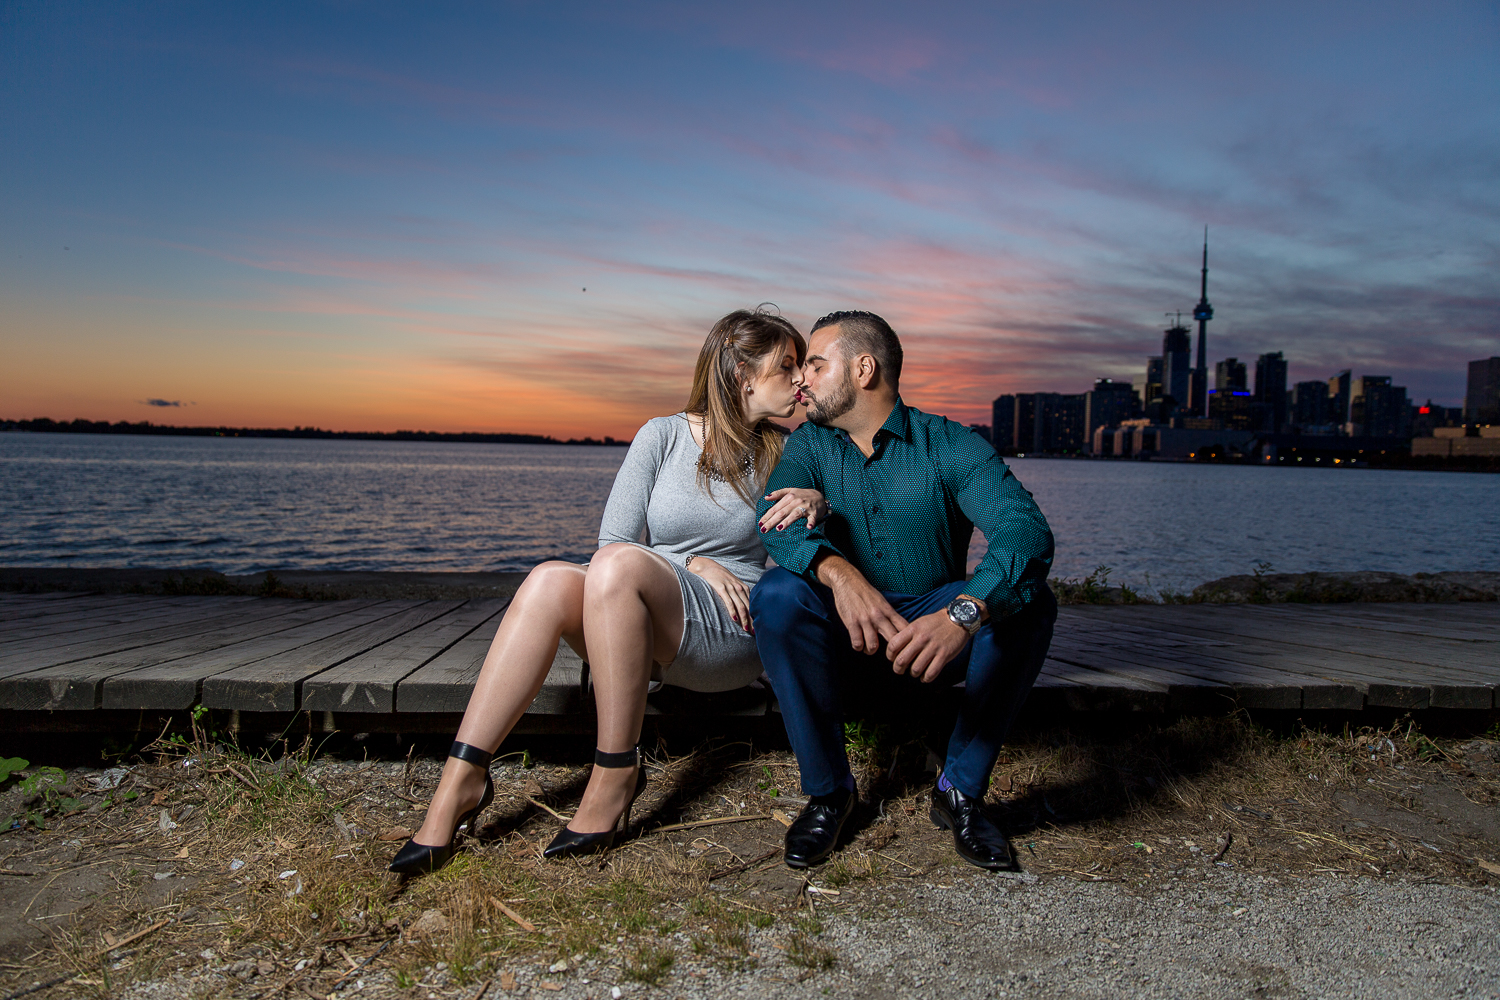 Distillery-District-Polson-Pier-Humber-Bay-Park-Engagement-Photos-0047.jpg